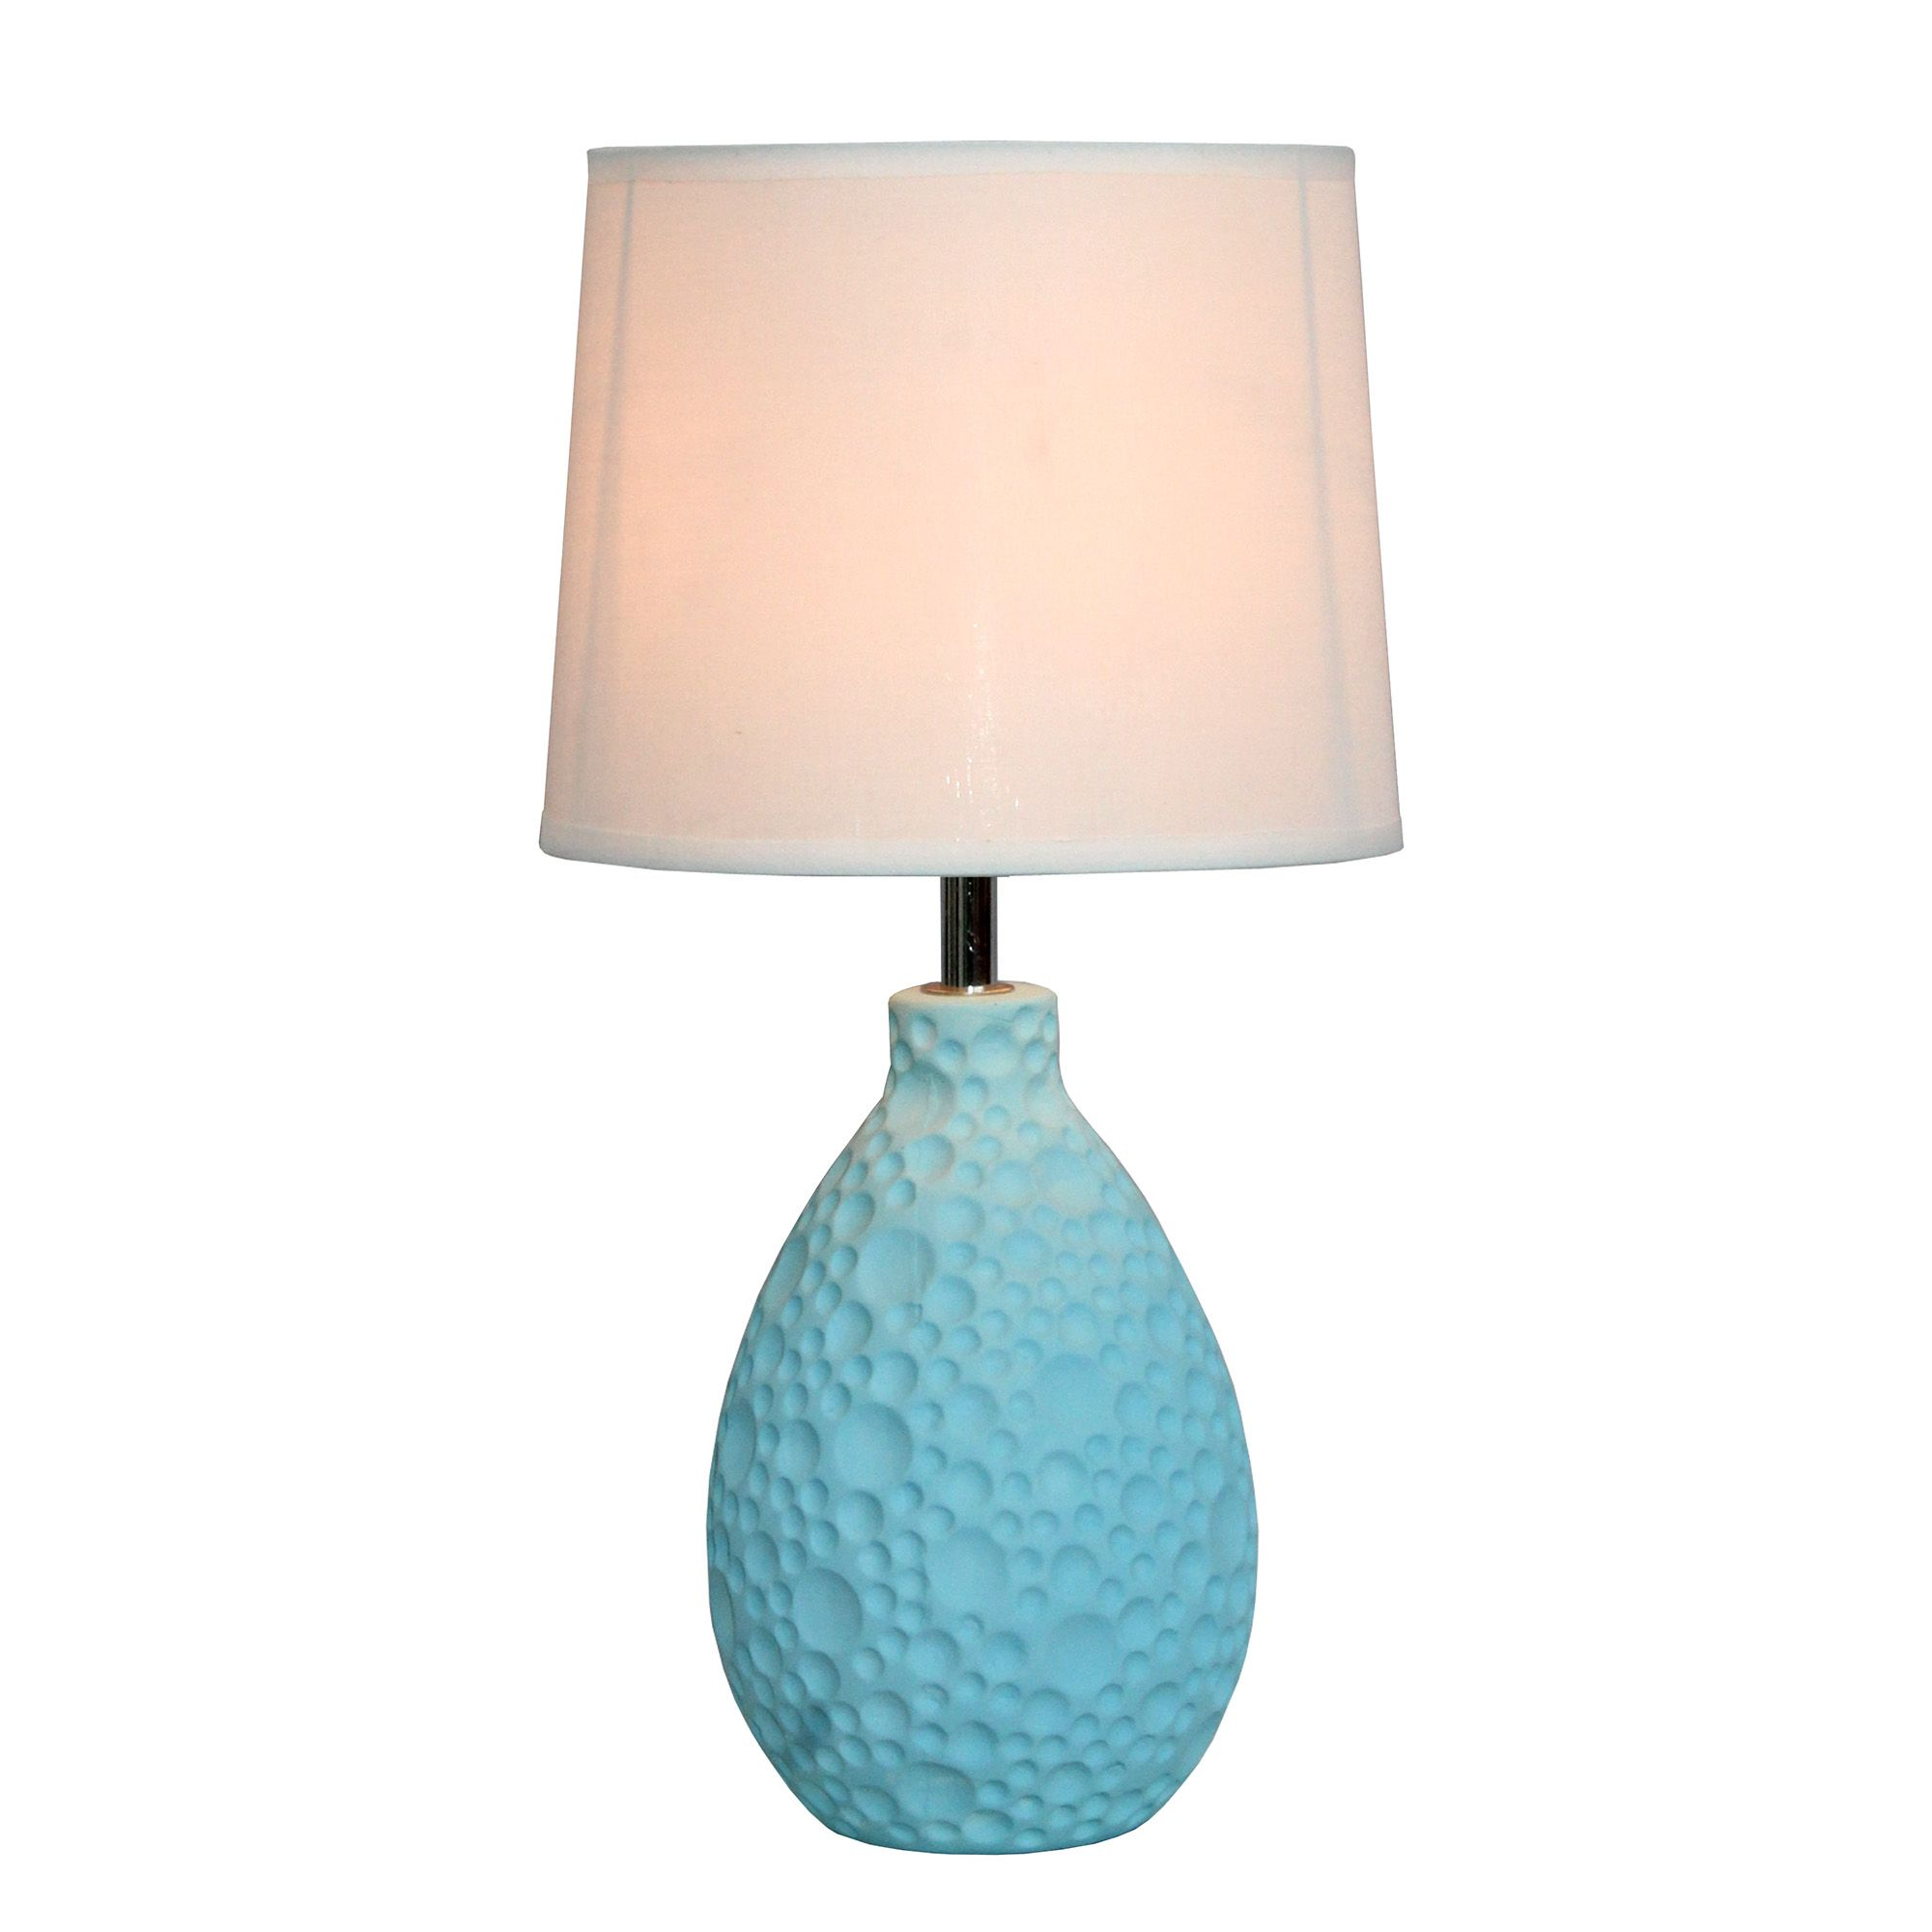 Magnificent Simple Designs Texturized Stucco Ceramic Oval Table Lamp Interior Design Ideas Grebswwsoteloinfo